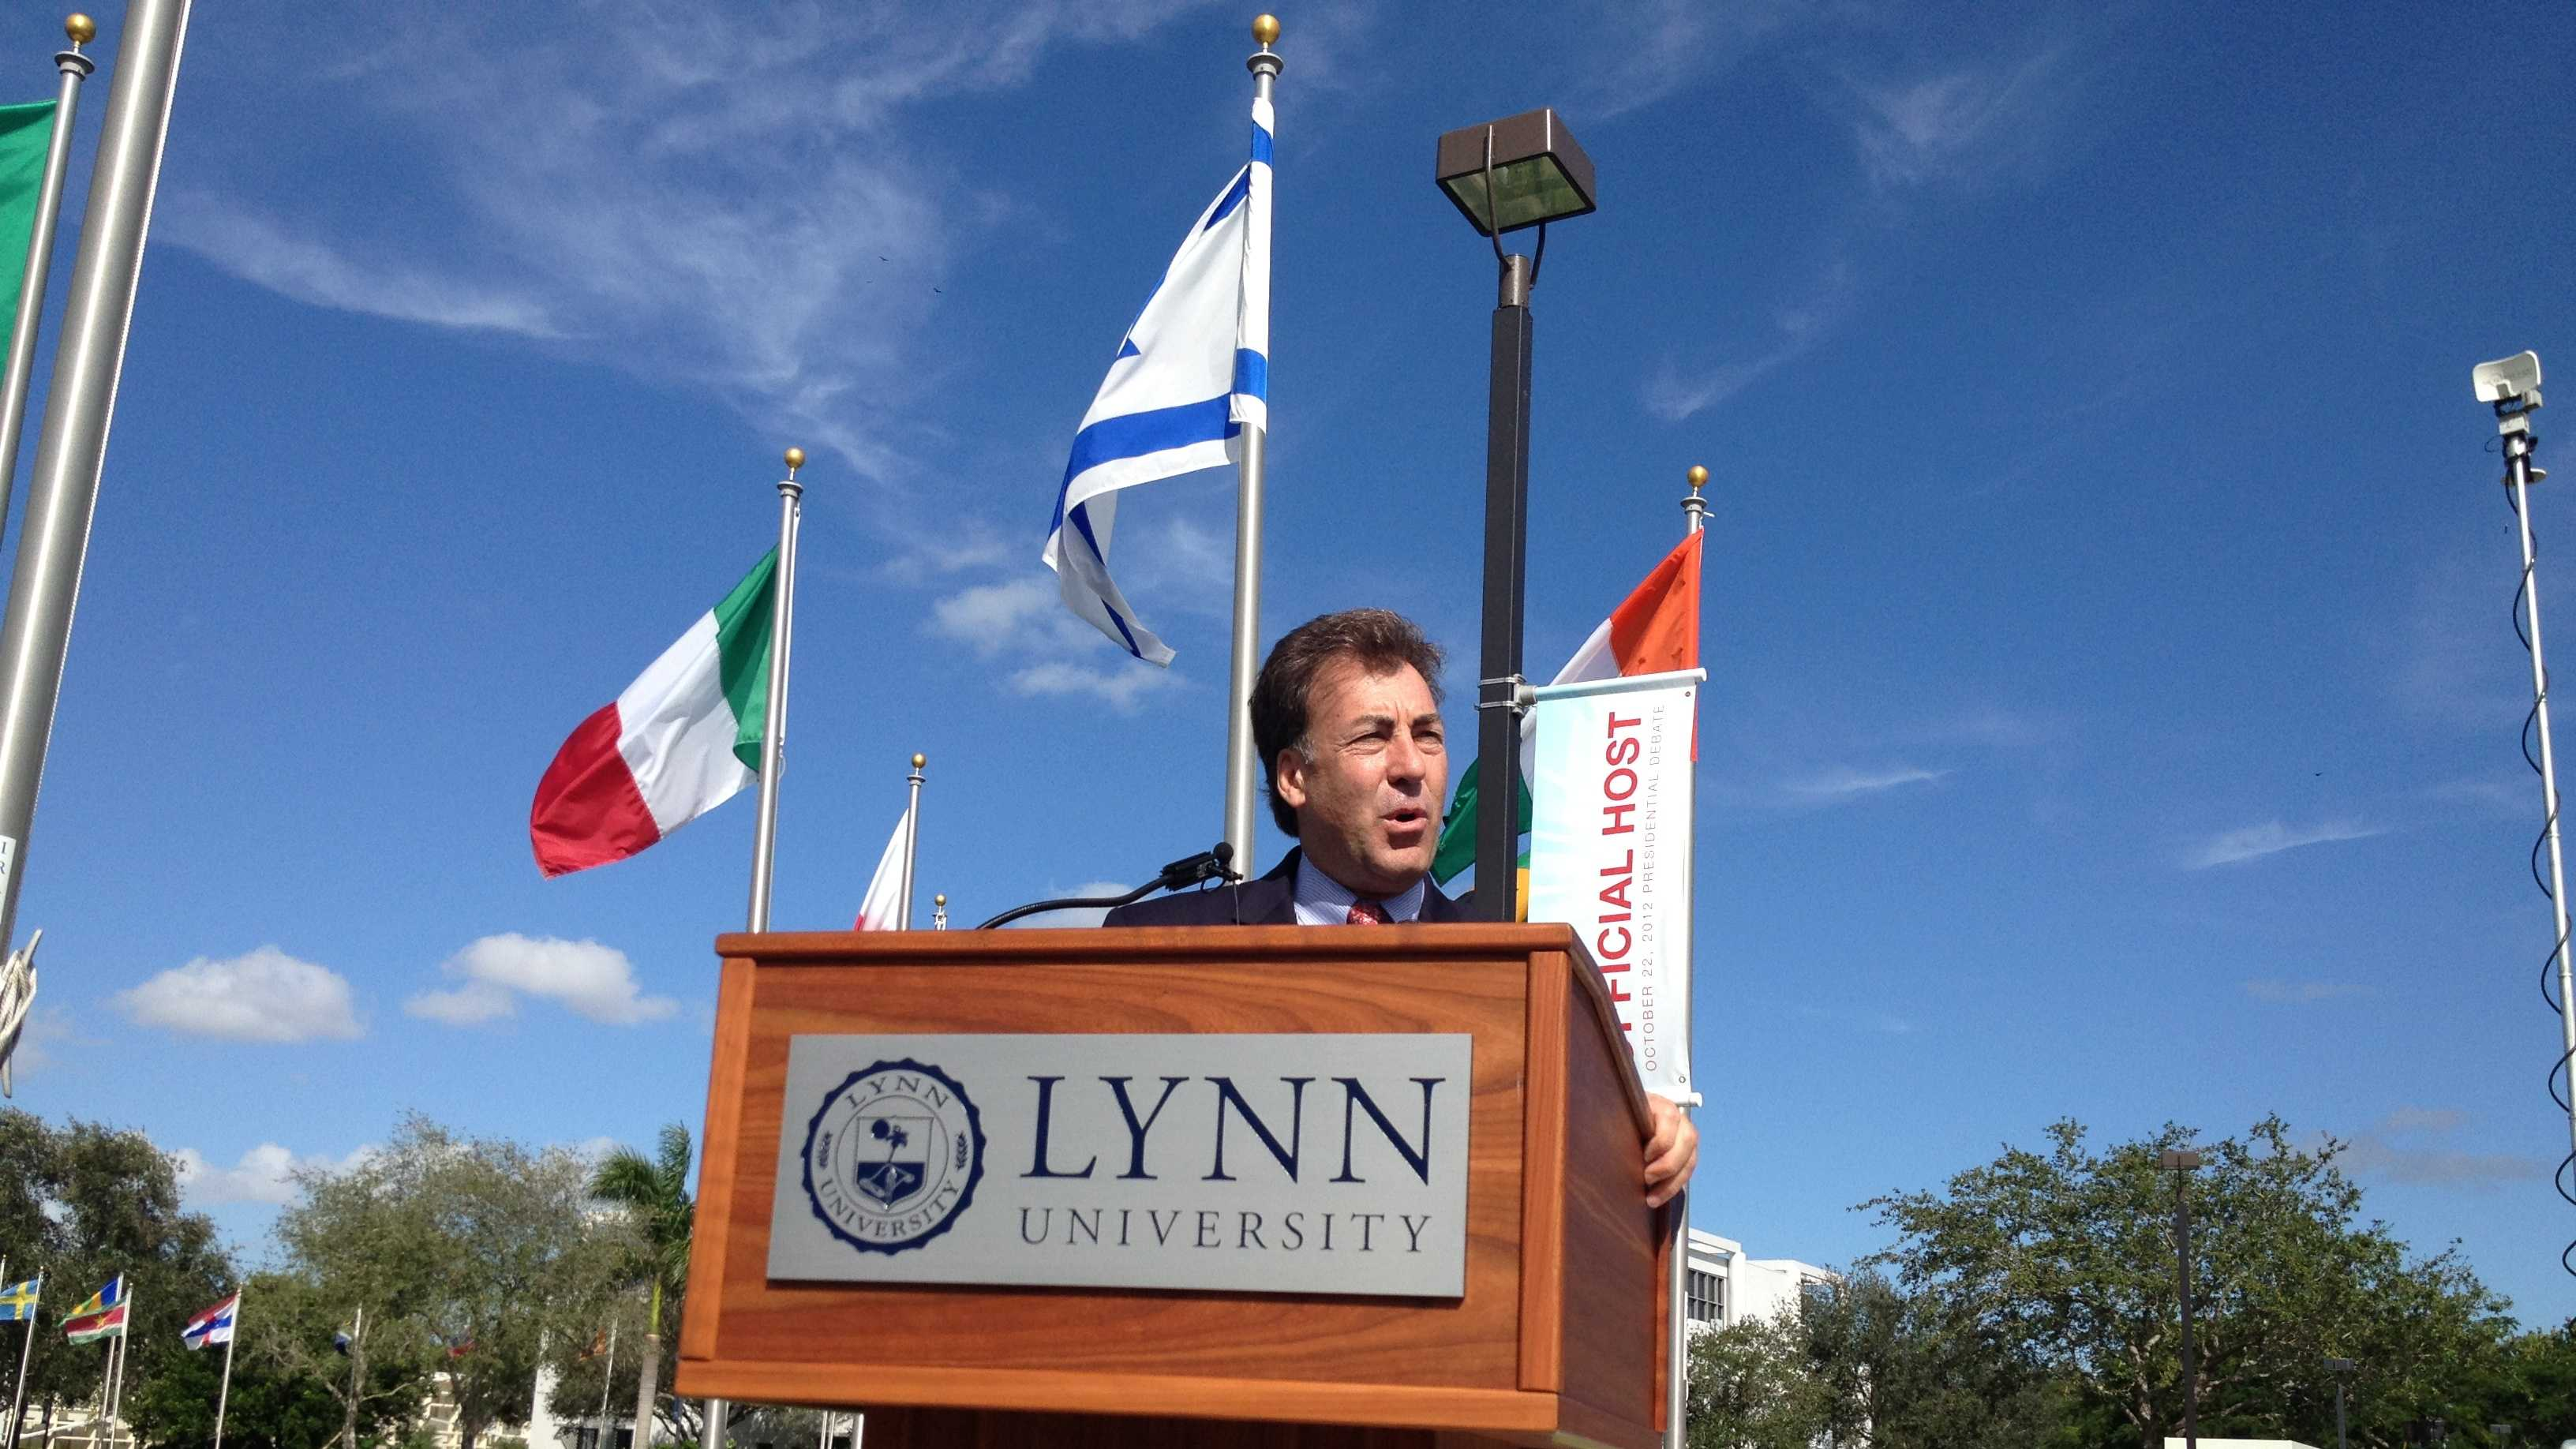 Greg Malfitano, Lynn University's senior vice chairman for administration, called the final presidential debate a success.